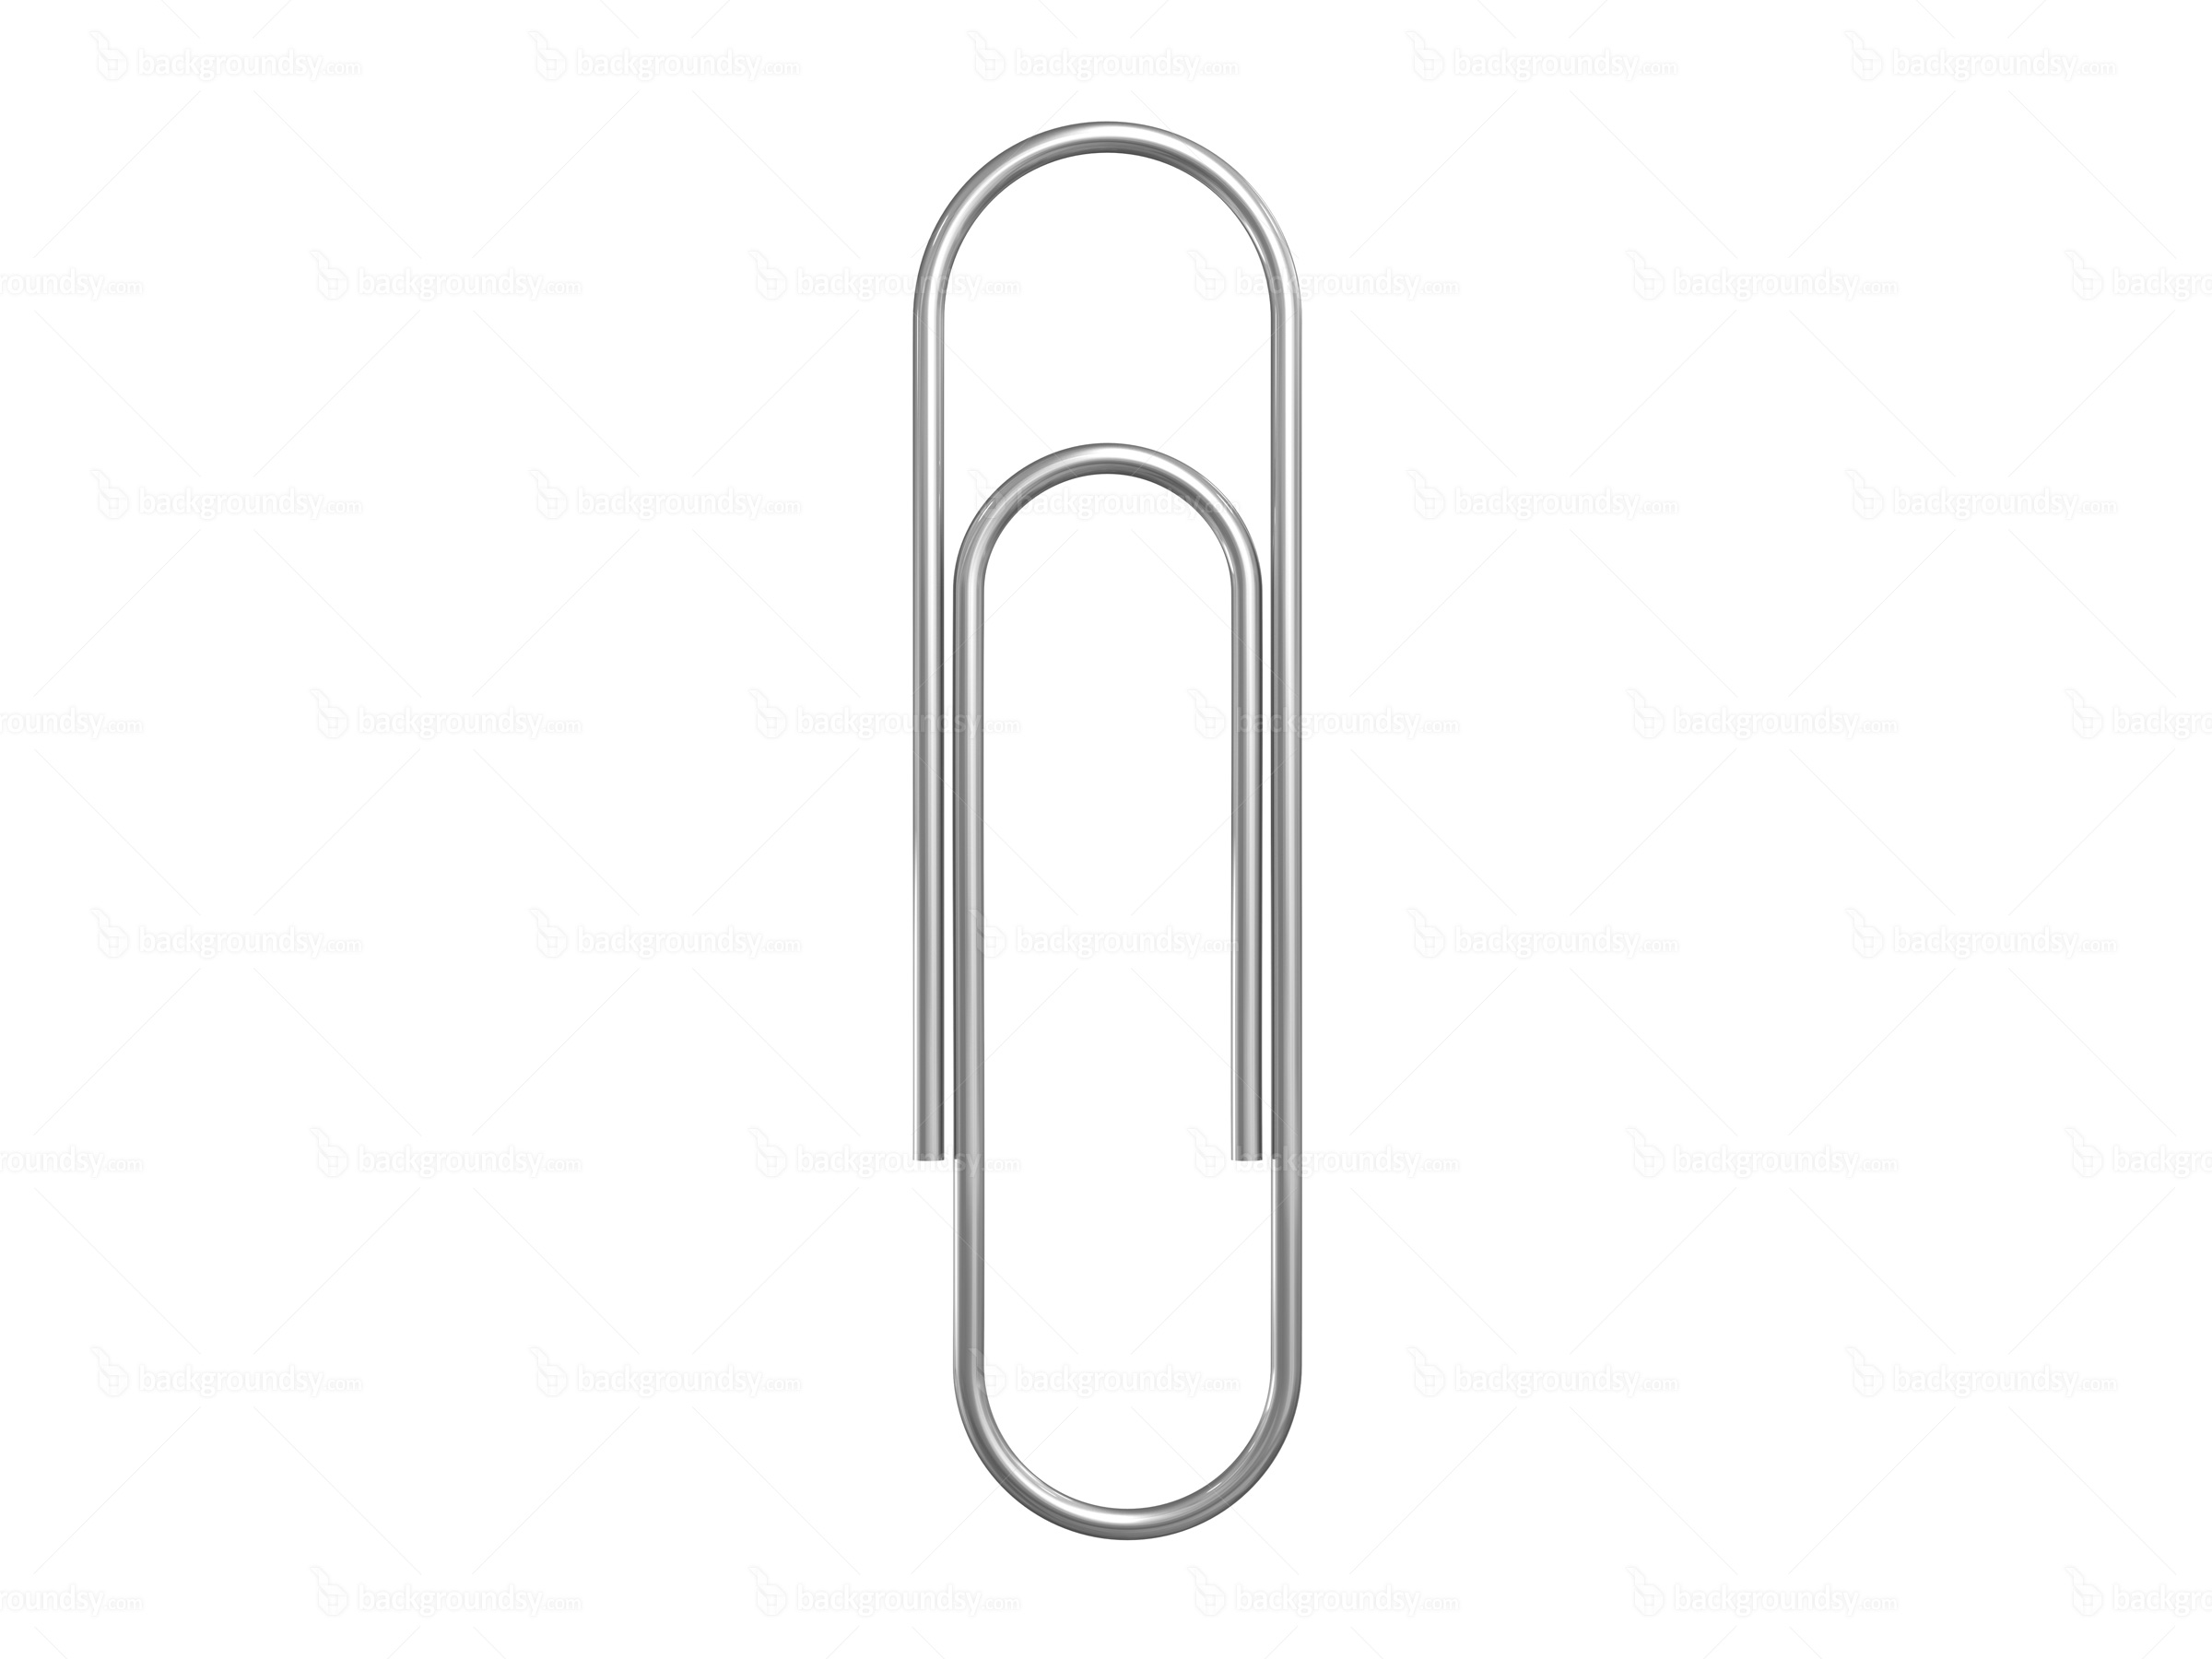 21+ Paperclip Png.